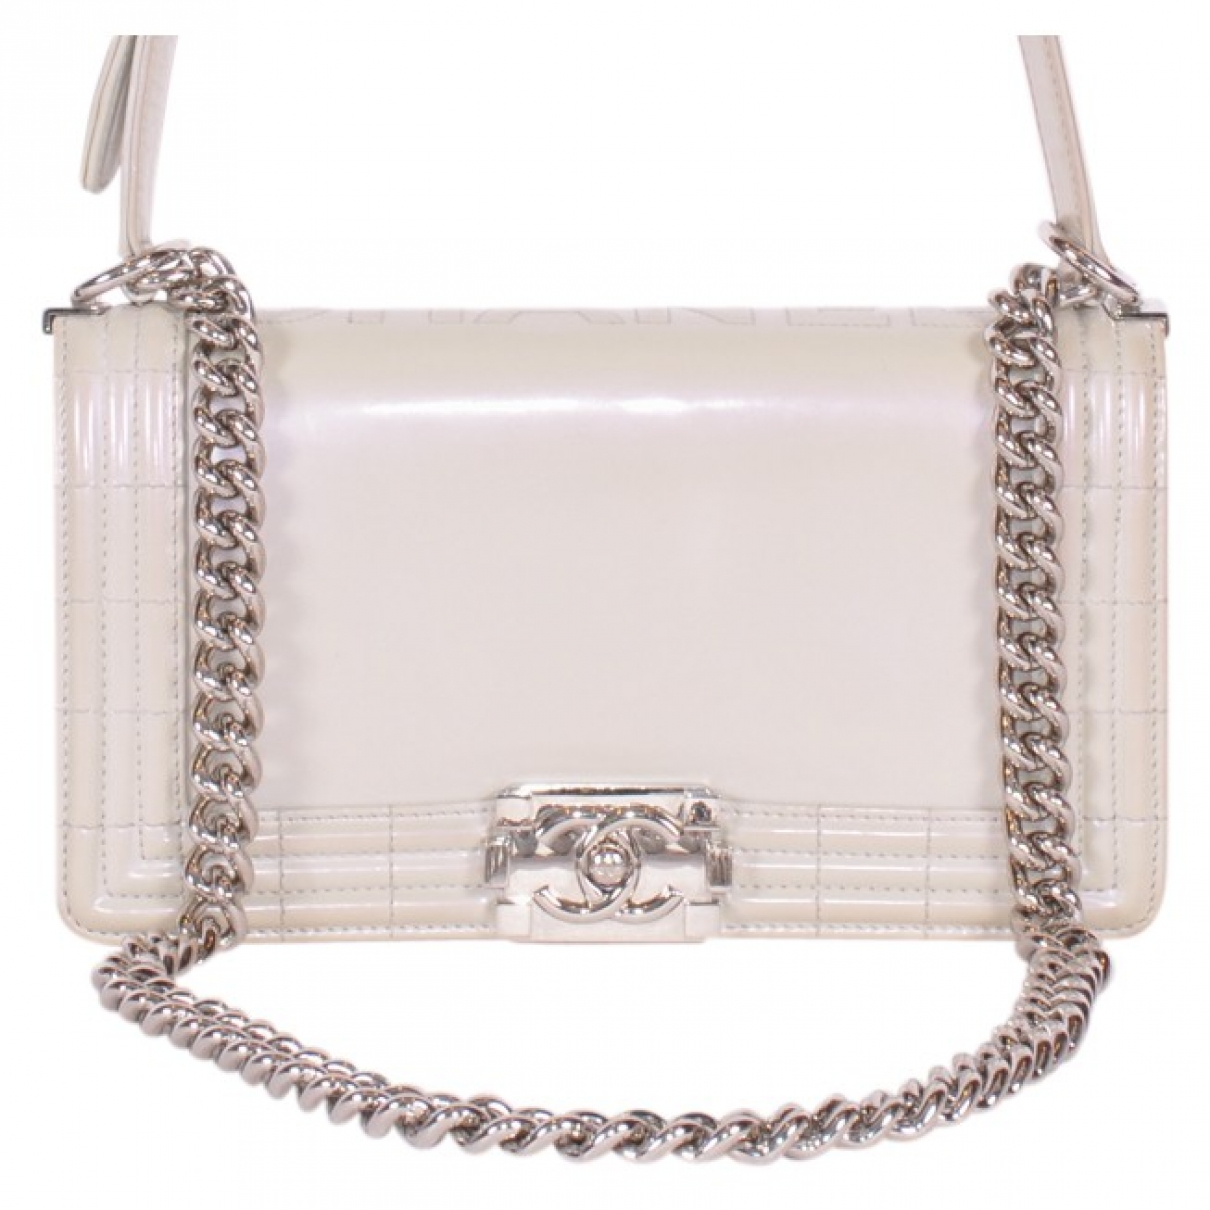 Chanel Boy Beige Patent leather Clutch bag for Women \N